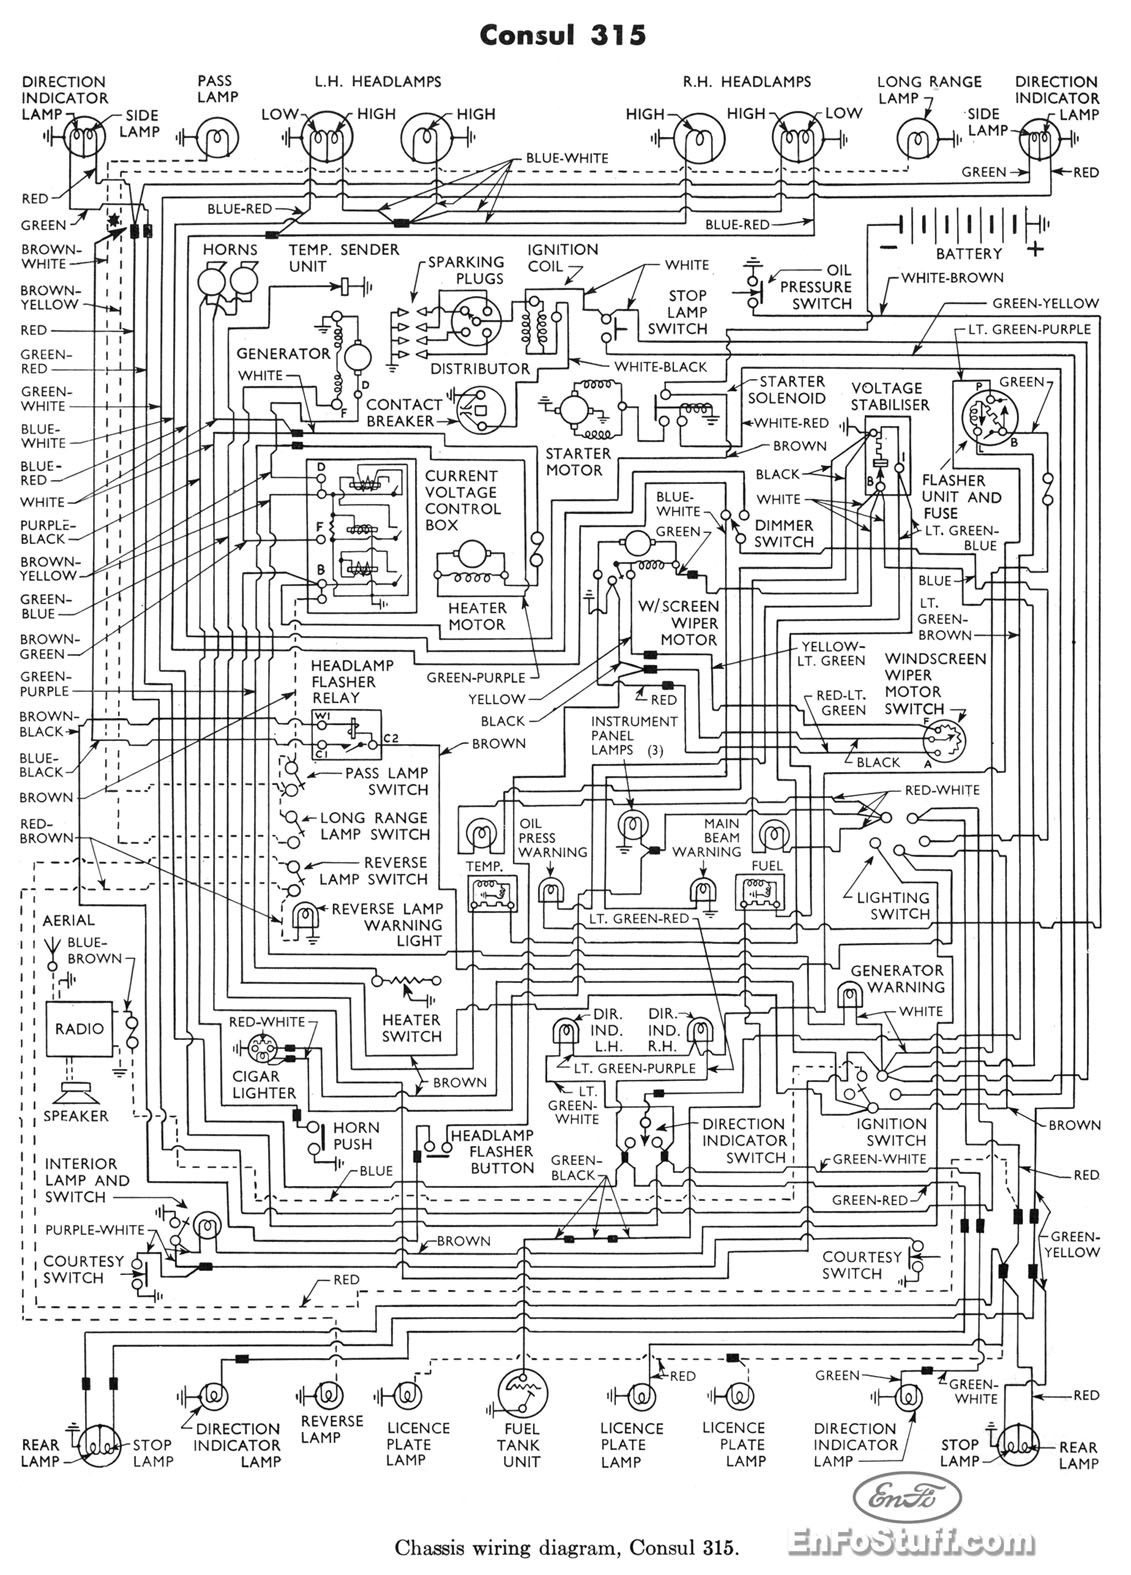 wiring diagram for a ford tractor 3930 the wiring diagram ford tractor wiring harness diagram vidim wiring diagram wiring diagram